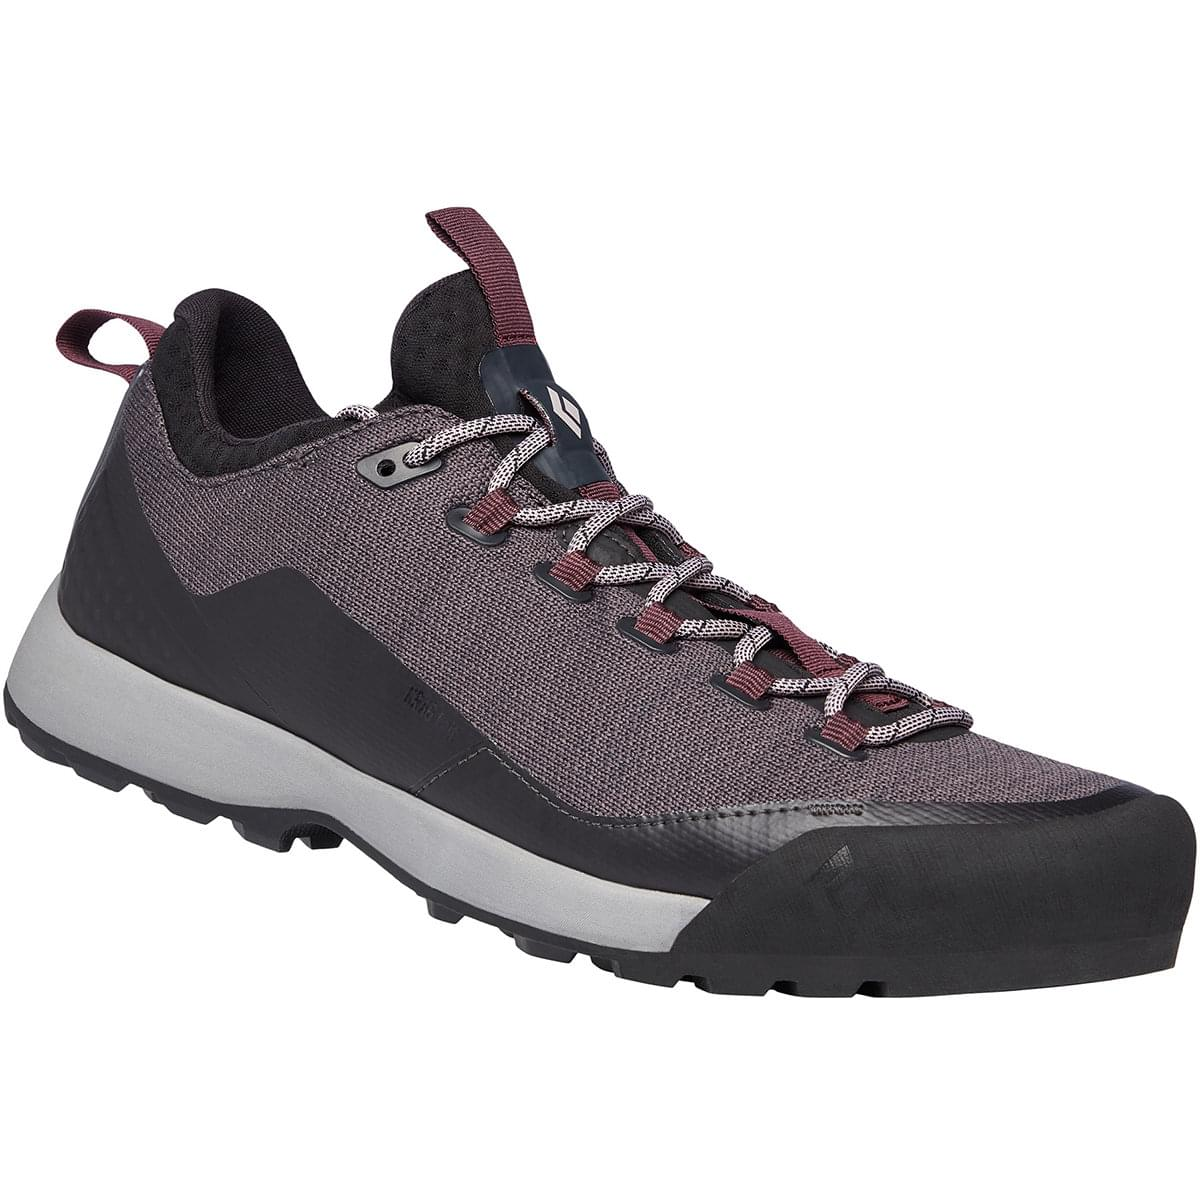 Mission LT Womens Approach shoe in light maroon colour main image